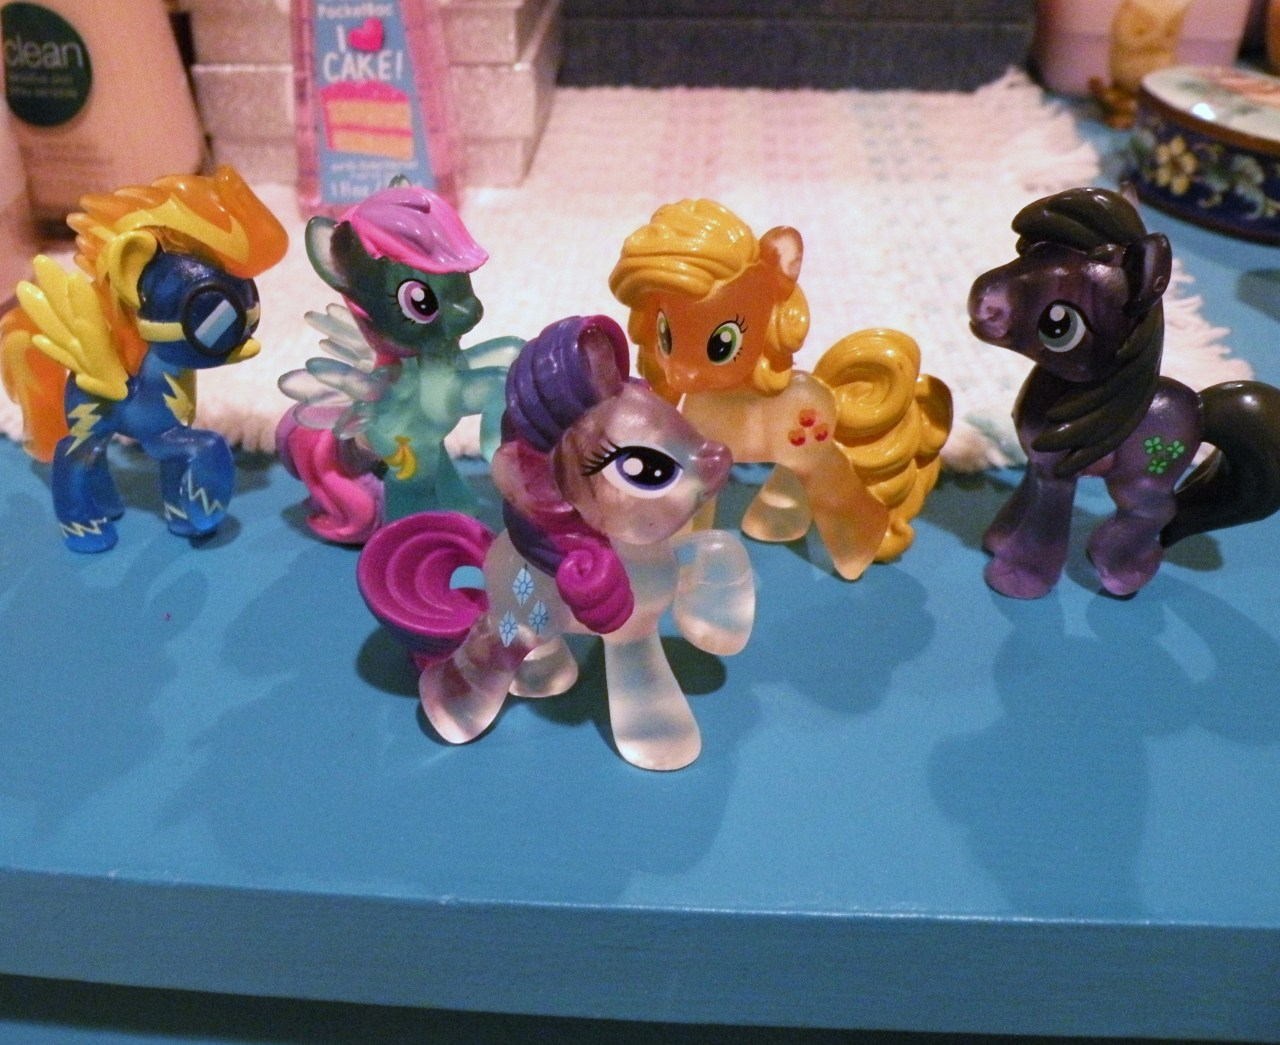 What: Blind bags wave 7 Where: Walmart Price: $2.47 eac plus tax :((( walmart finally got their shit together and had a full box of wave 7, so I got the last 5 I needed. It's been like a month since they had any. I was starting to think there was a global shortage or something. It's notable that they raised the price…damn. I guess I am going to have to scale back my blind bag purchases…which I probably won't. I love best pony as a crystal pony! she does indeed look fabulous. Banana fluff has some nice colors going on and clover is boring. But I'm a completionist when a full box presents itself. so there's that. wave 7 done.